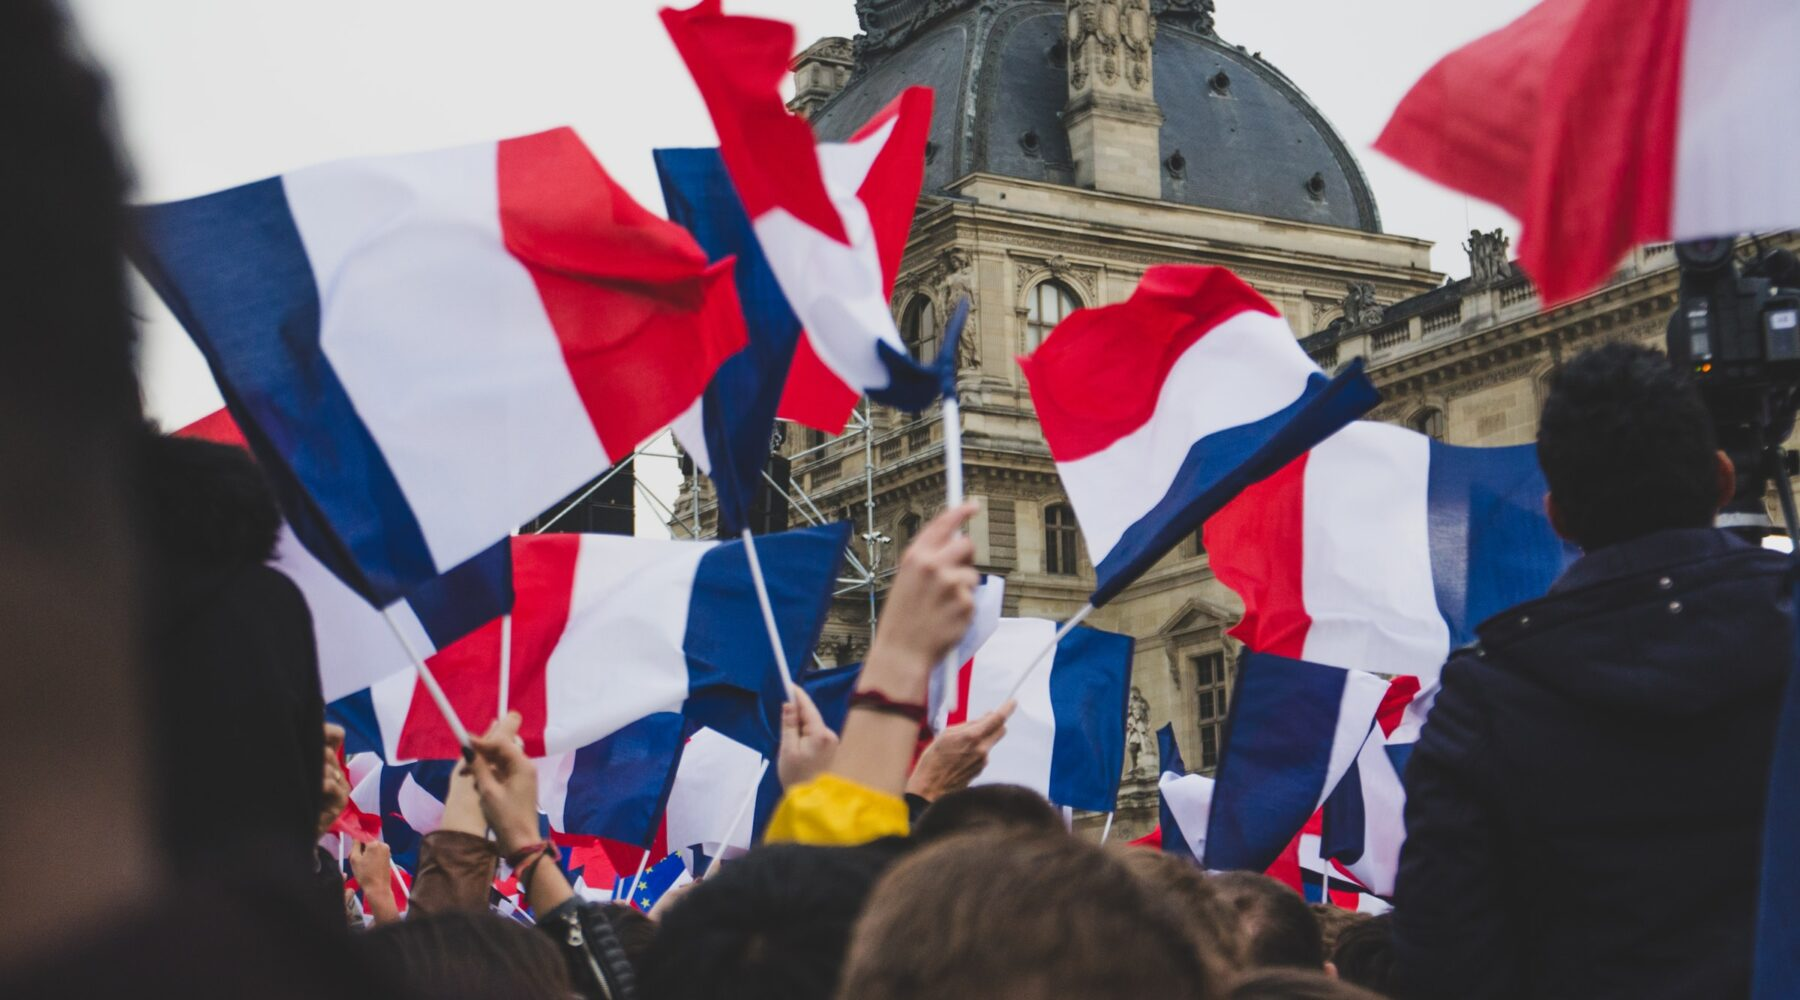 People outside the Louvre waving french flags